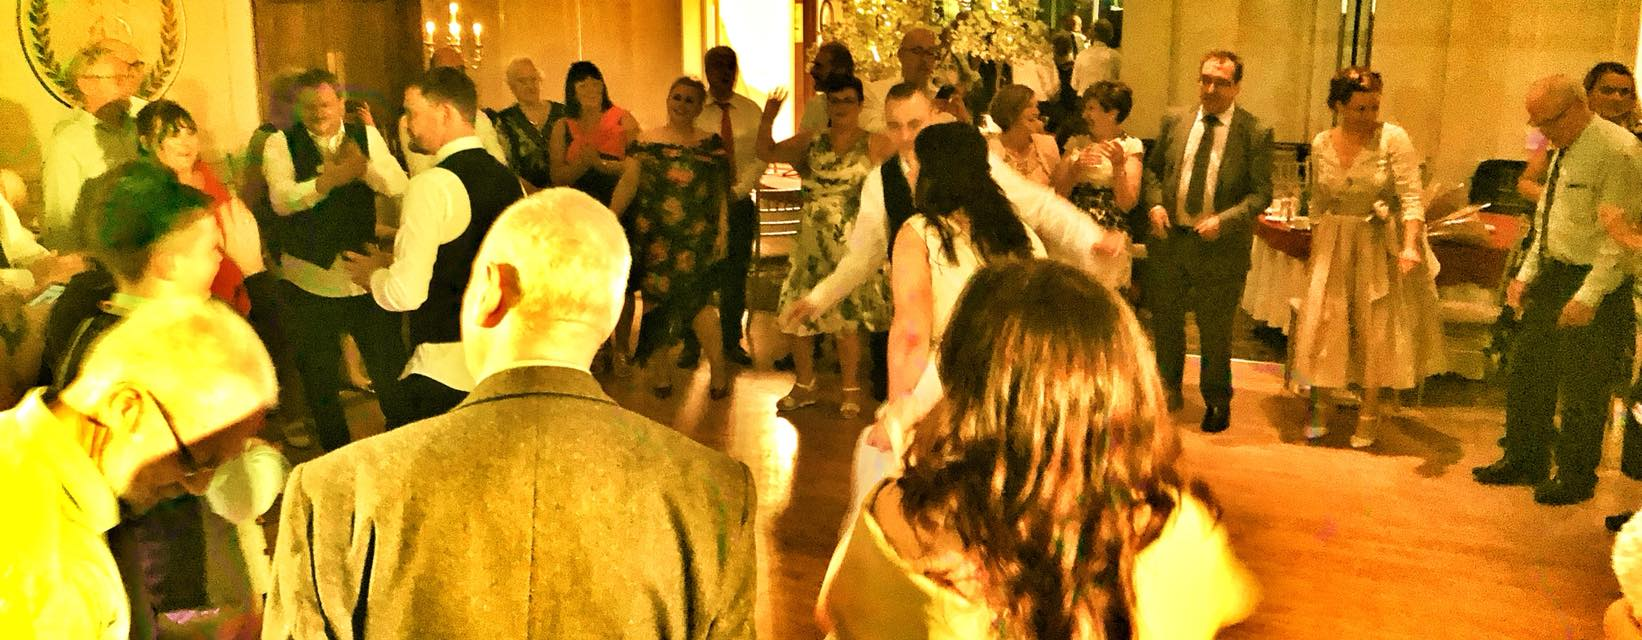 PLAYLIST with Hazel & Christopher at their wedding in The Keadeen on the 9th September 2018